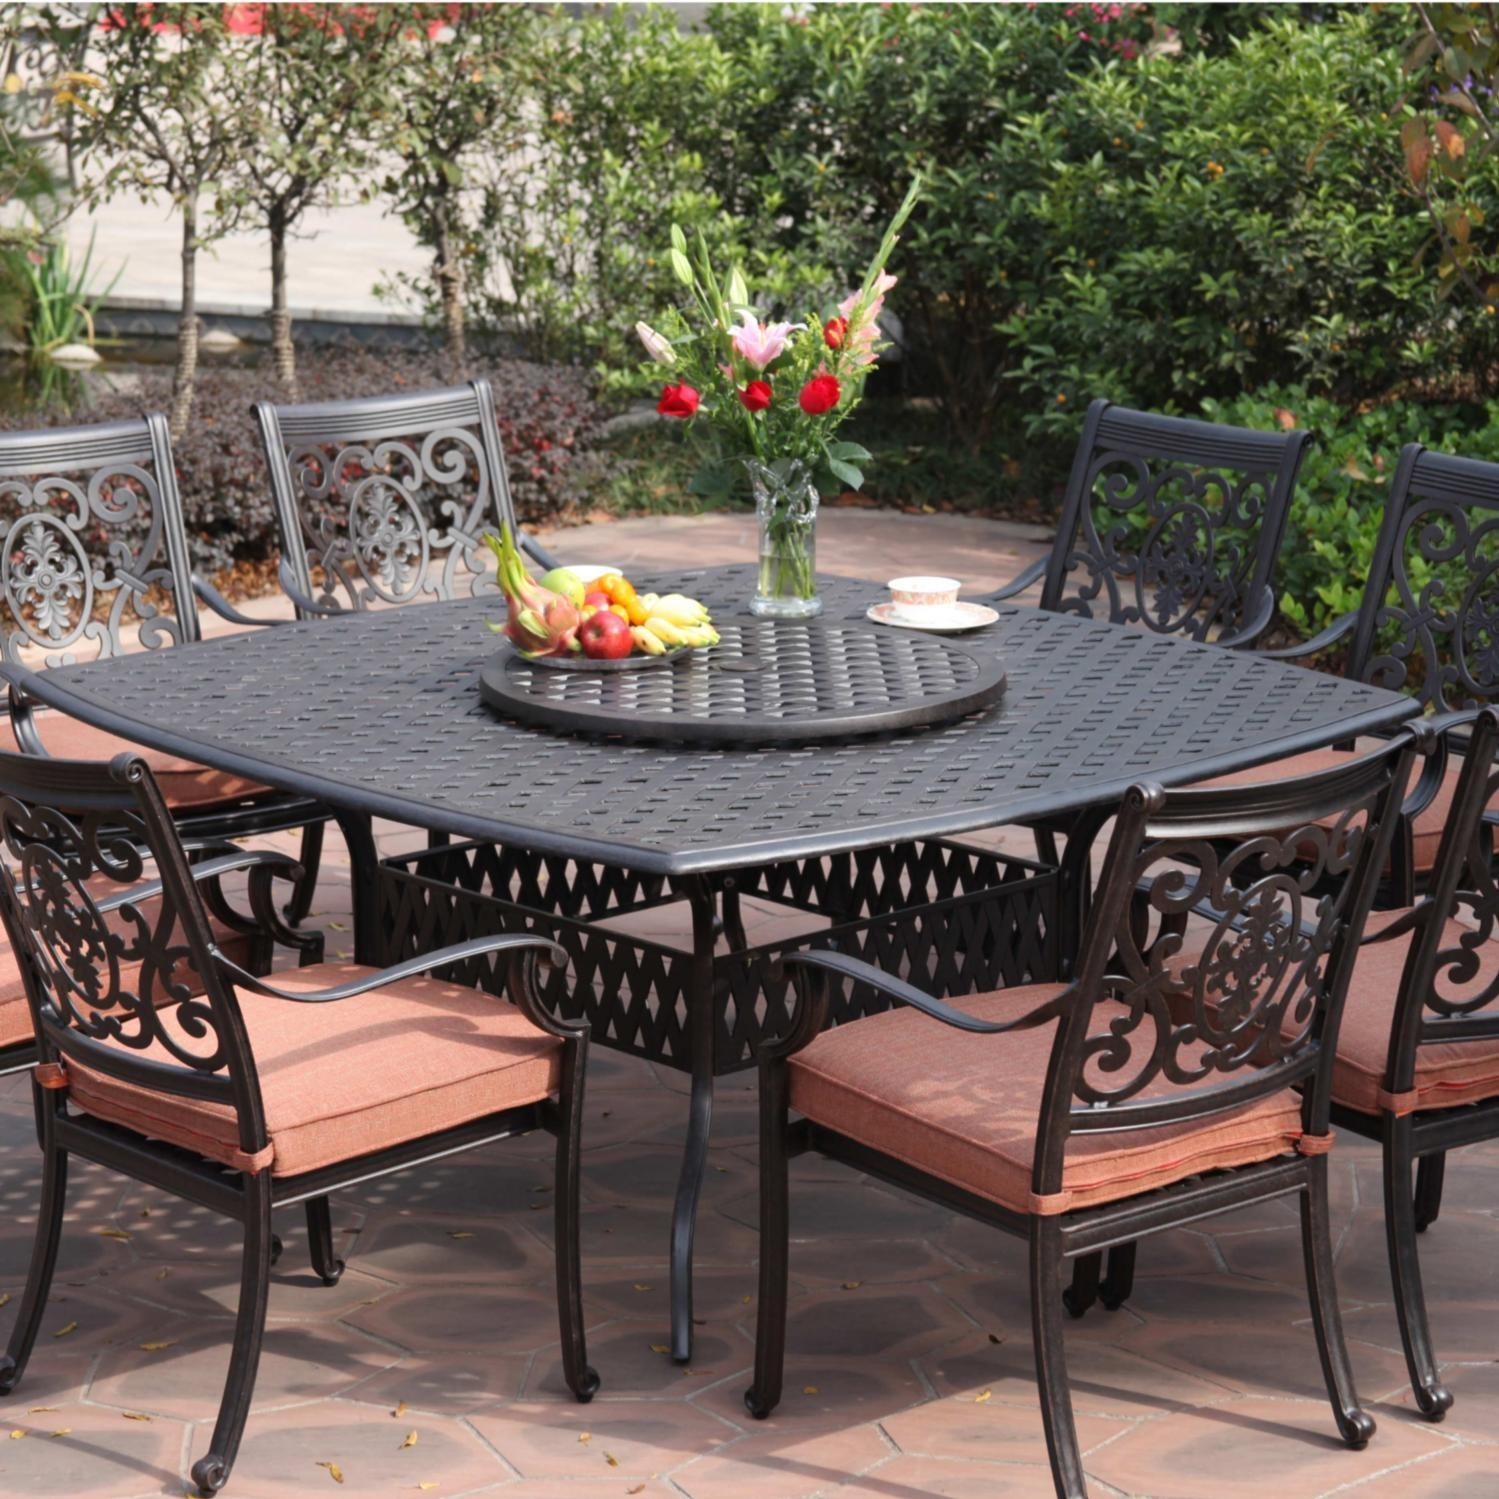 Discount patio dining sets patio design ideas for Affordable outdoor dining sets